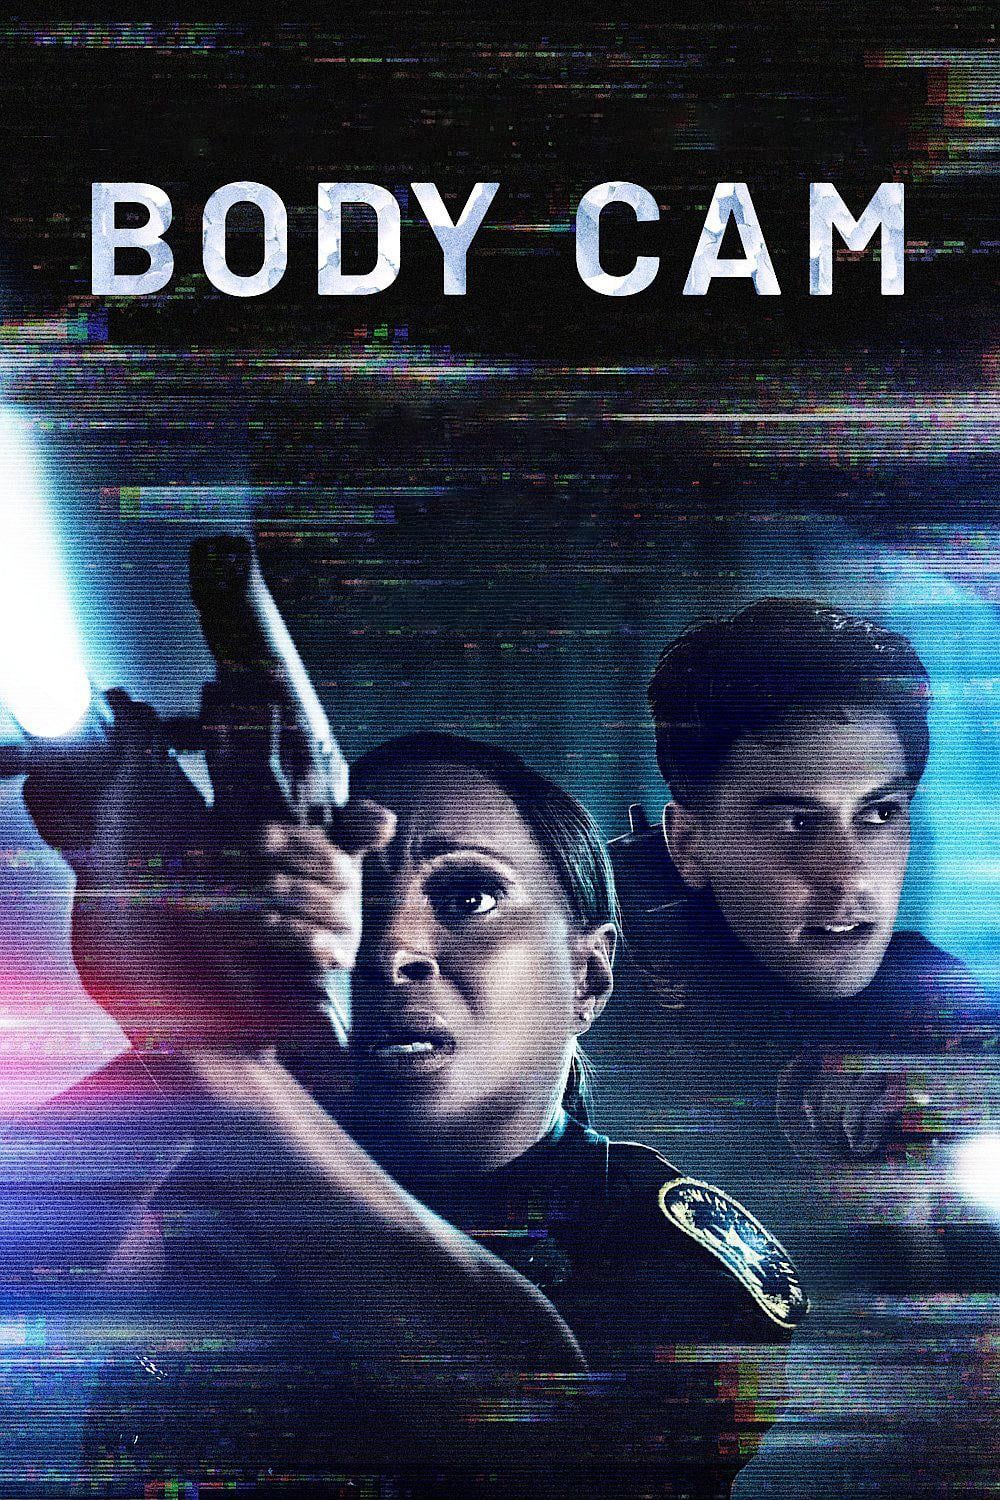 Voir Film Body Cam - Film (2020) streaming VF gratuit complet